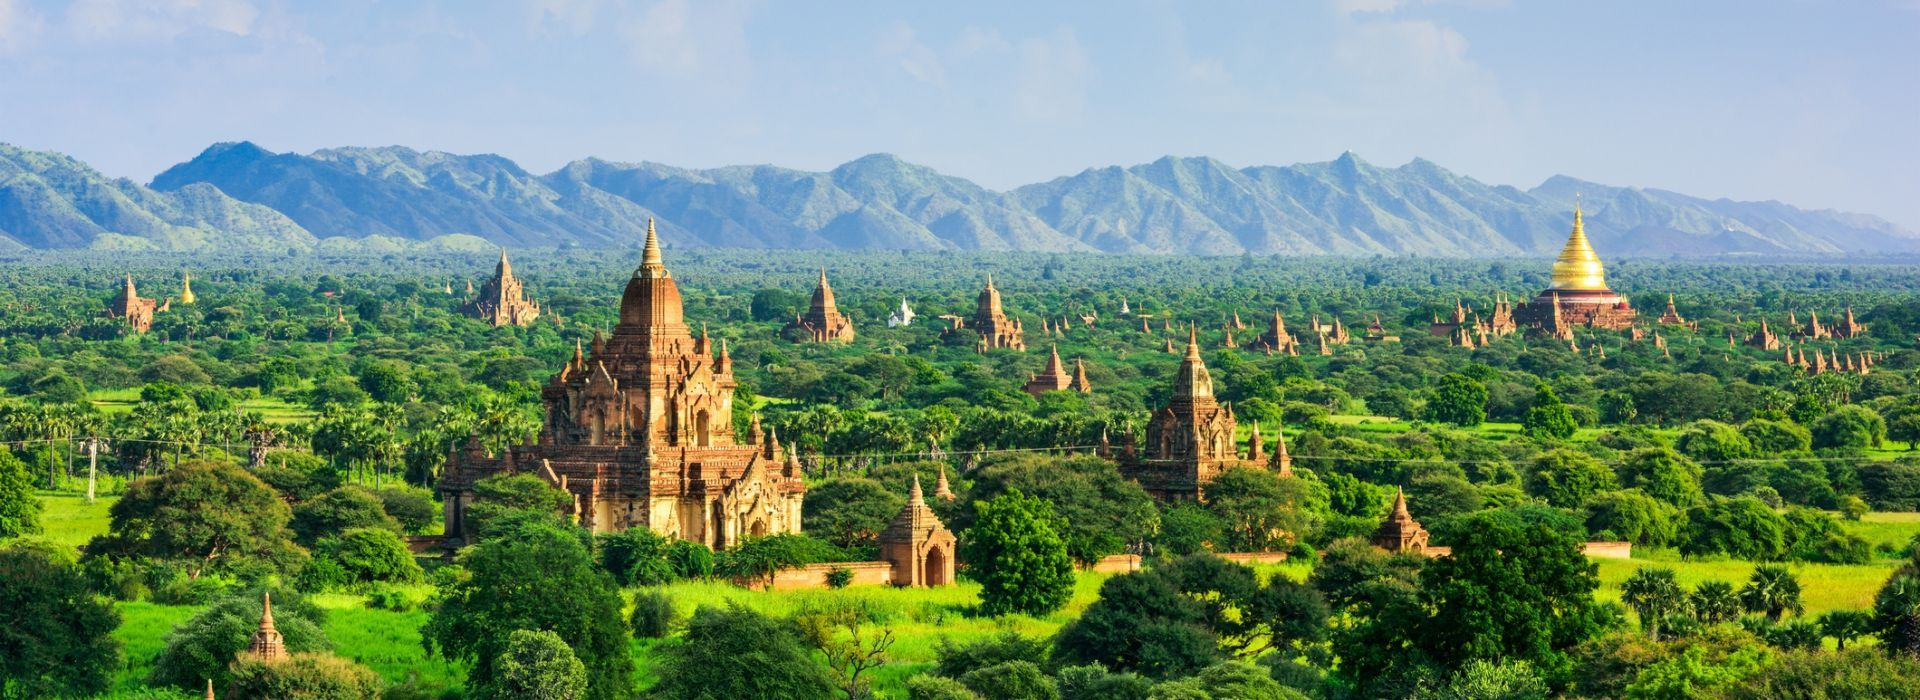 City sightseeing Tours in Mandalay